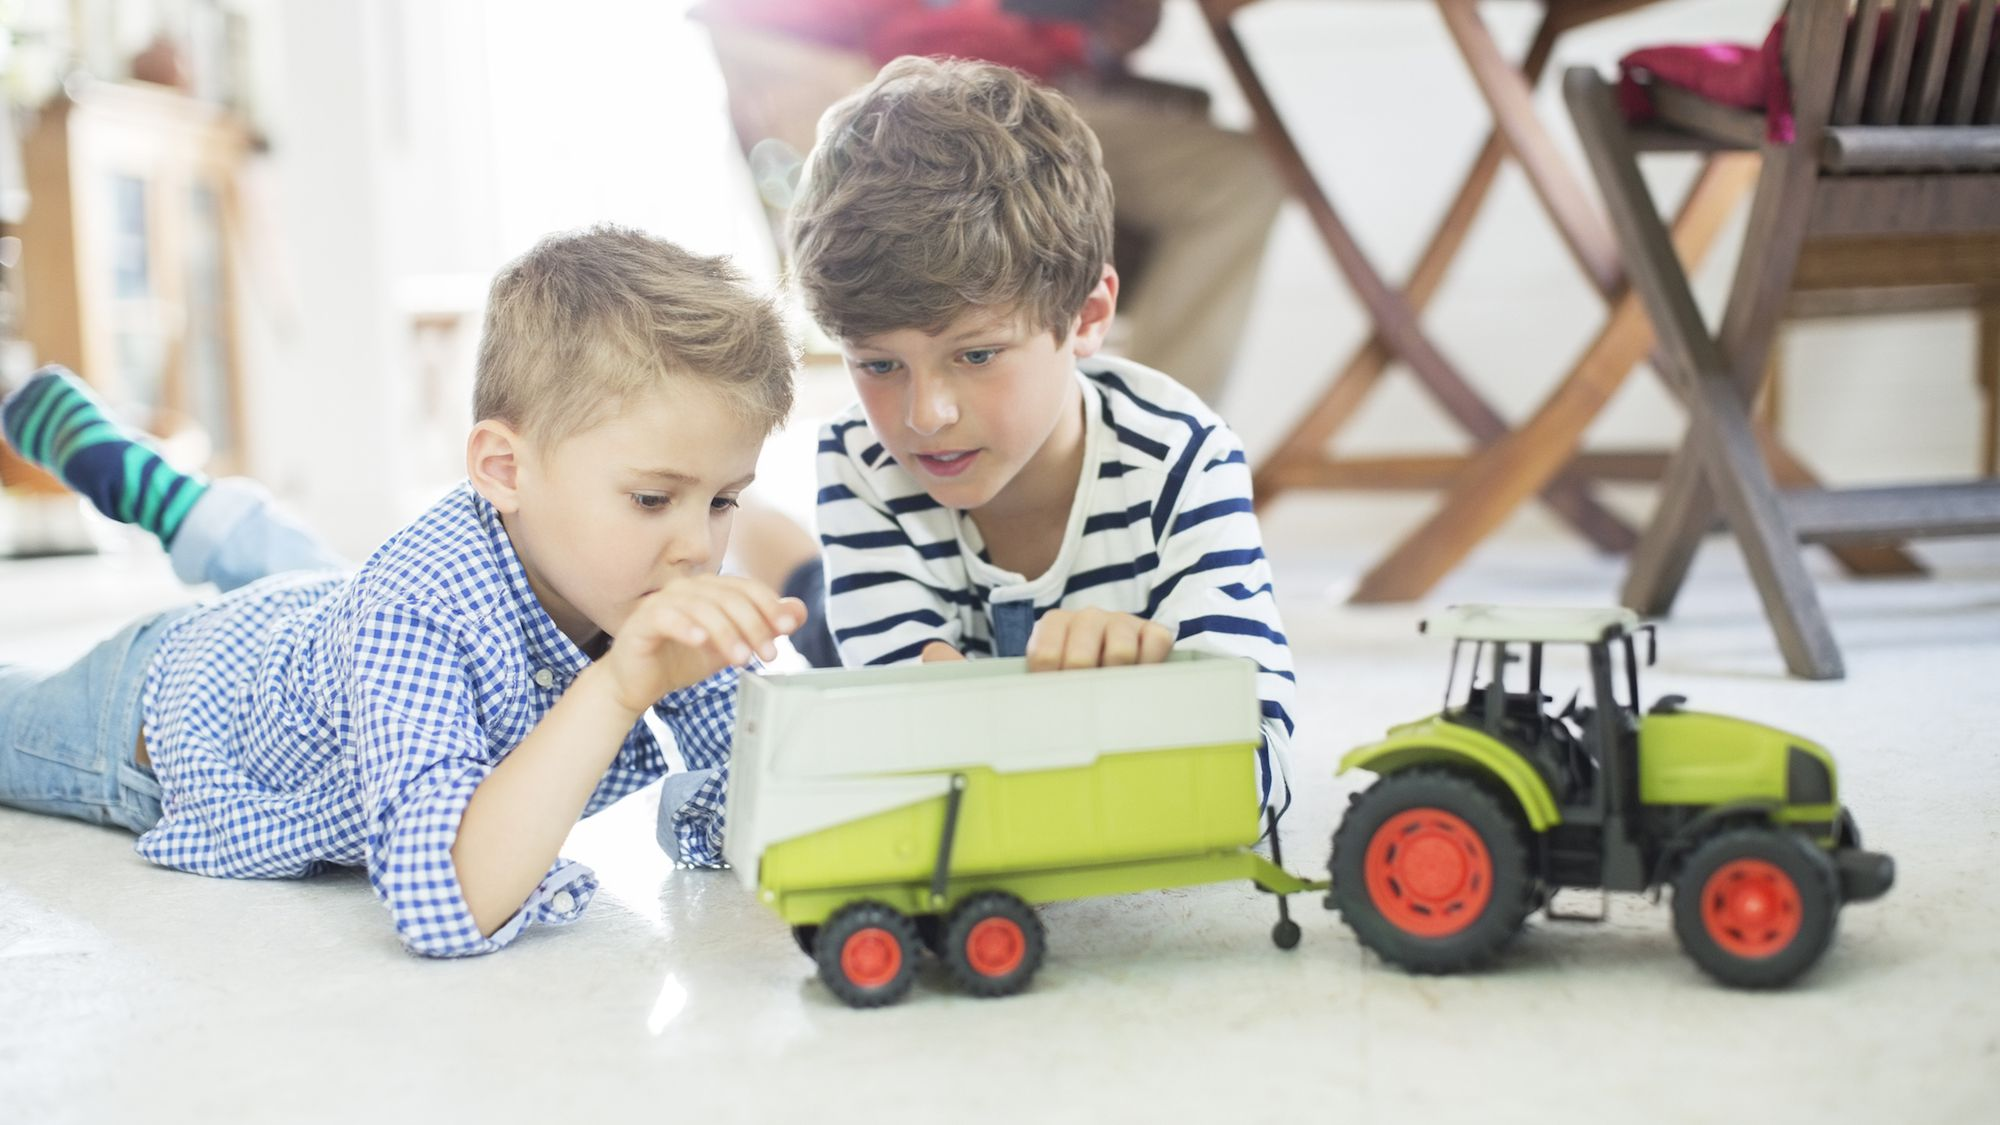 Teaching Kids to Share Their Toys